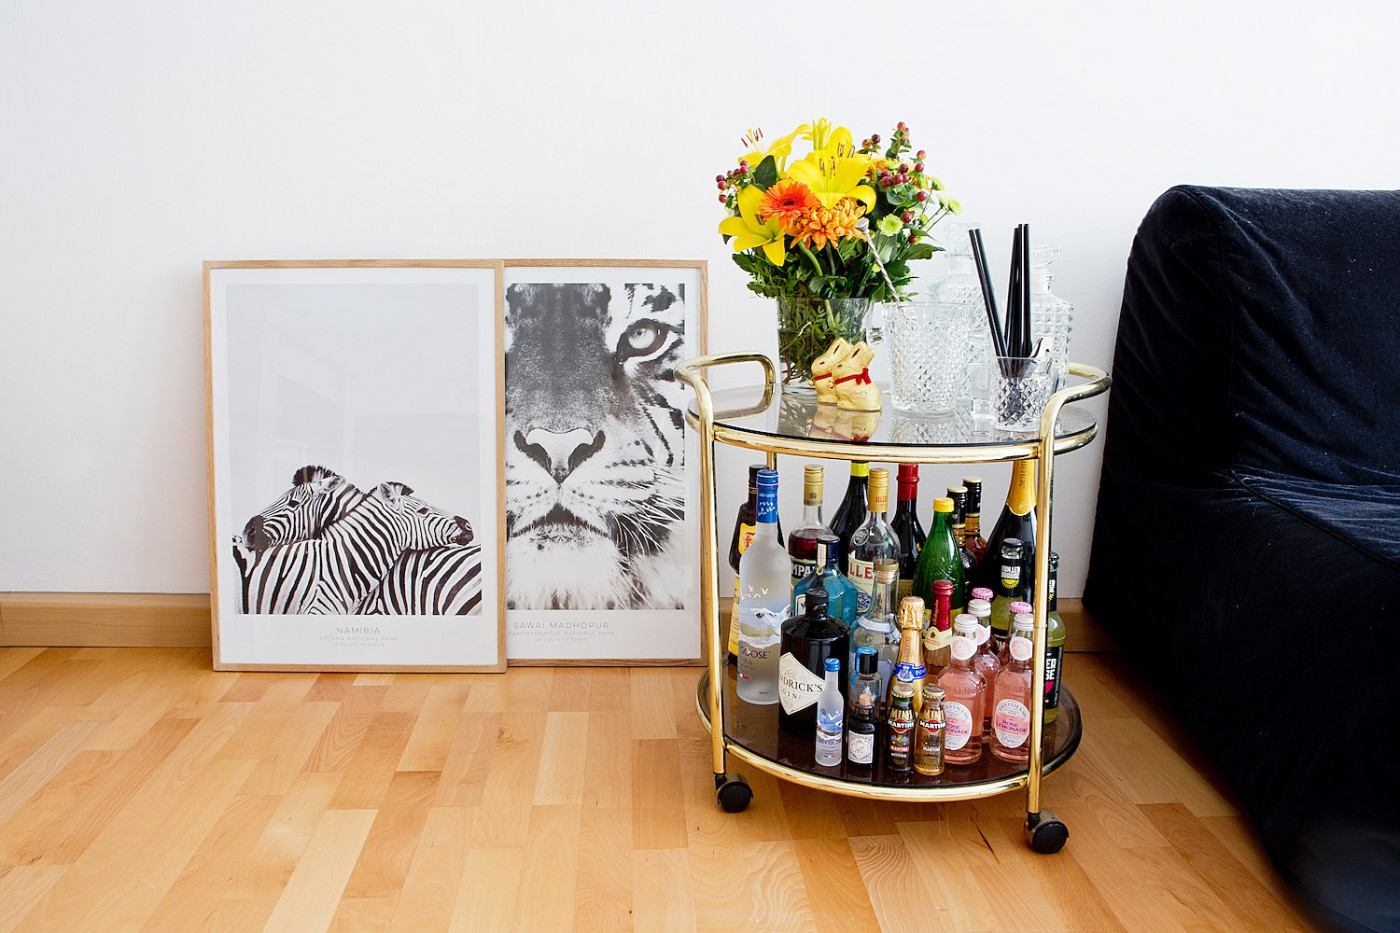 Zebra Bilder Wohnzimmer English News From The Living Room Safari Poster Bar Cart